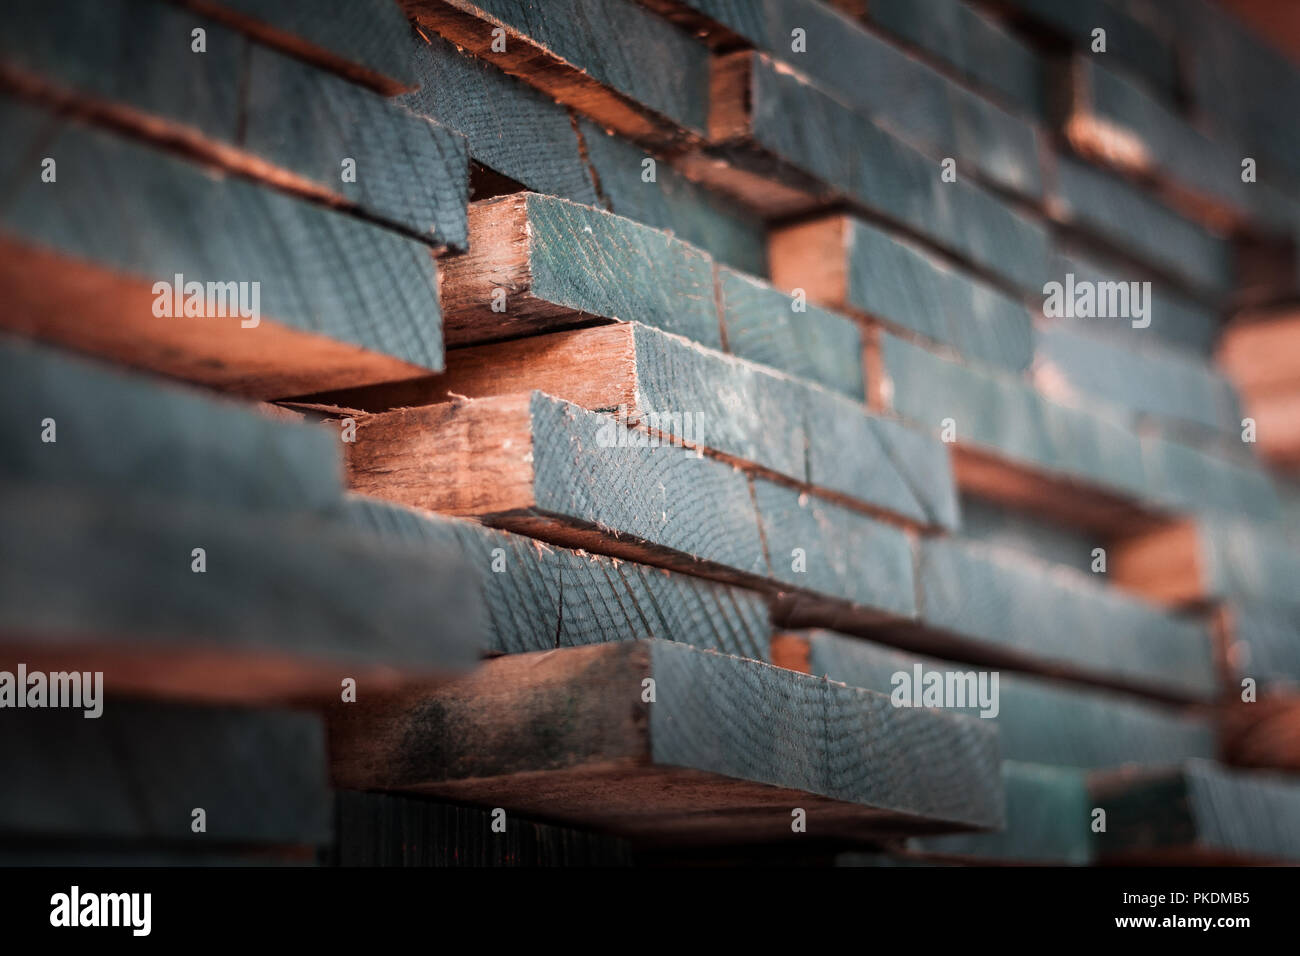 Better Quality Stock Photos & Better Quality Stock Images - Alamy